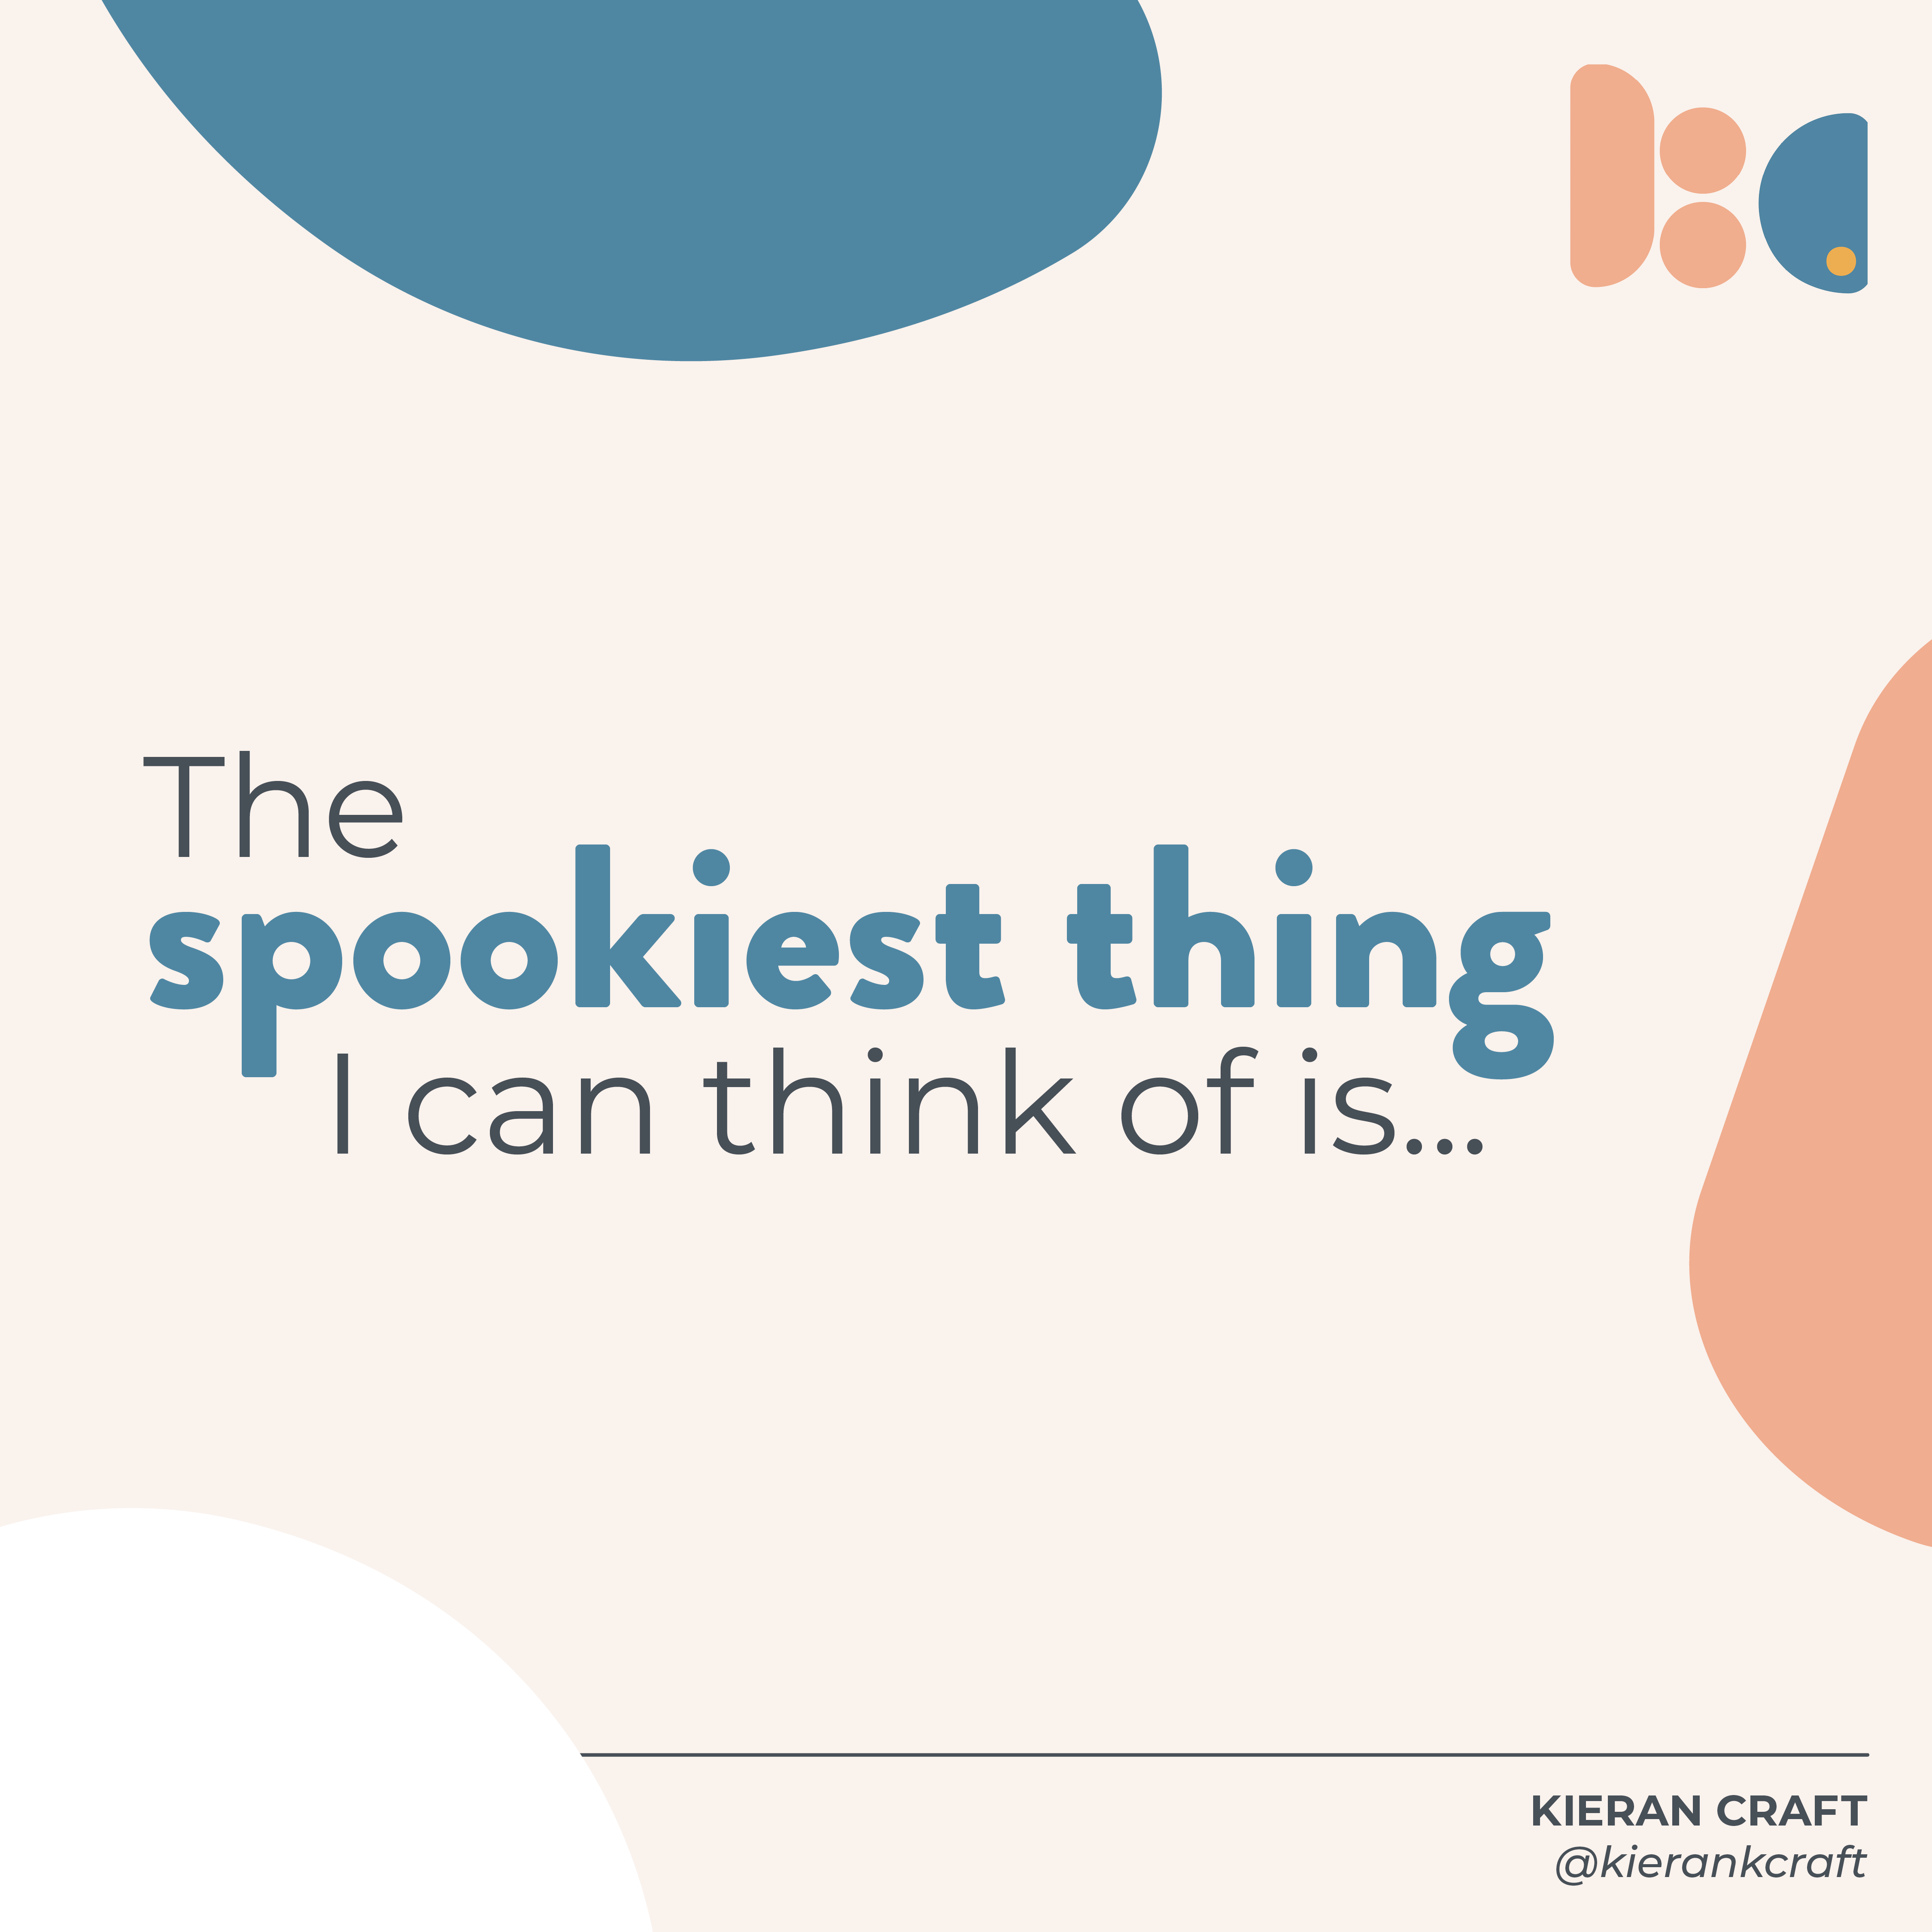 """The first slide of an Instagram post. It features an off-white background with rounded shapes in salmon, blue, and white, and Kieran Craft's logomark in the top right corner. In the center of the post is the text """"The spookiest thing I can think of is..."""""""